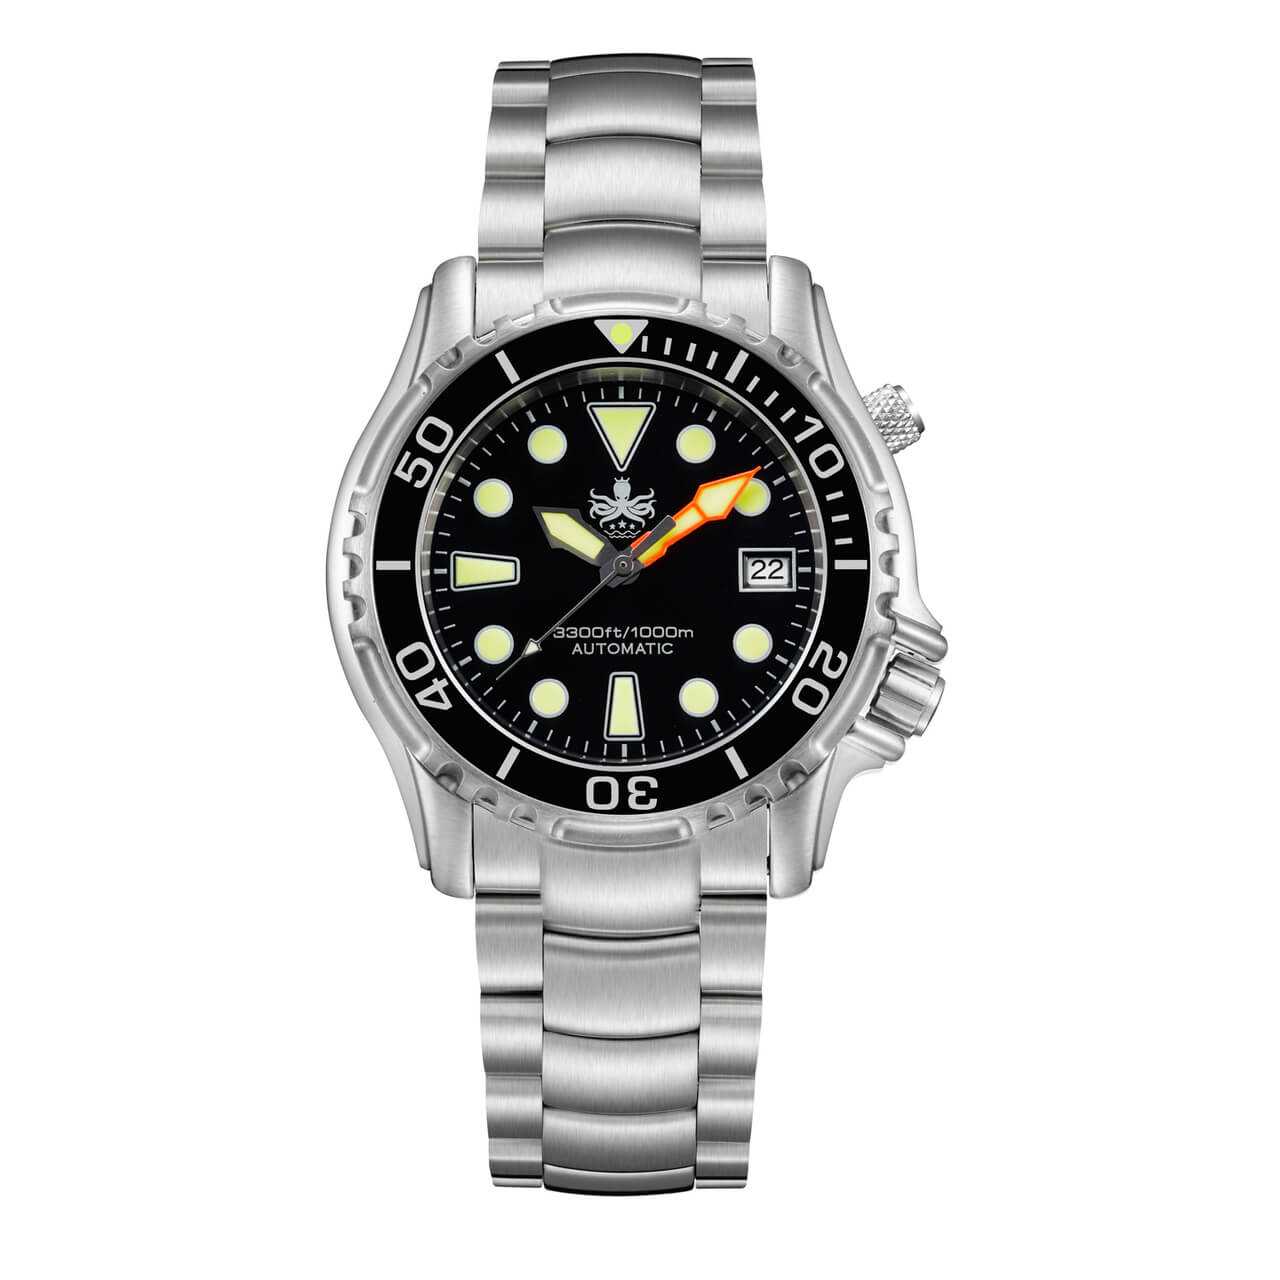 Phoibos ocean master py005c 1000m automatic professional - Oceanic dive watch ...